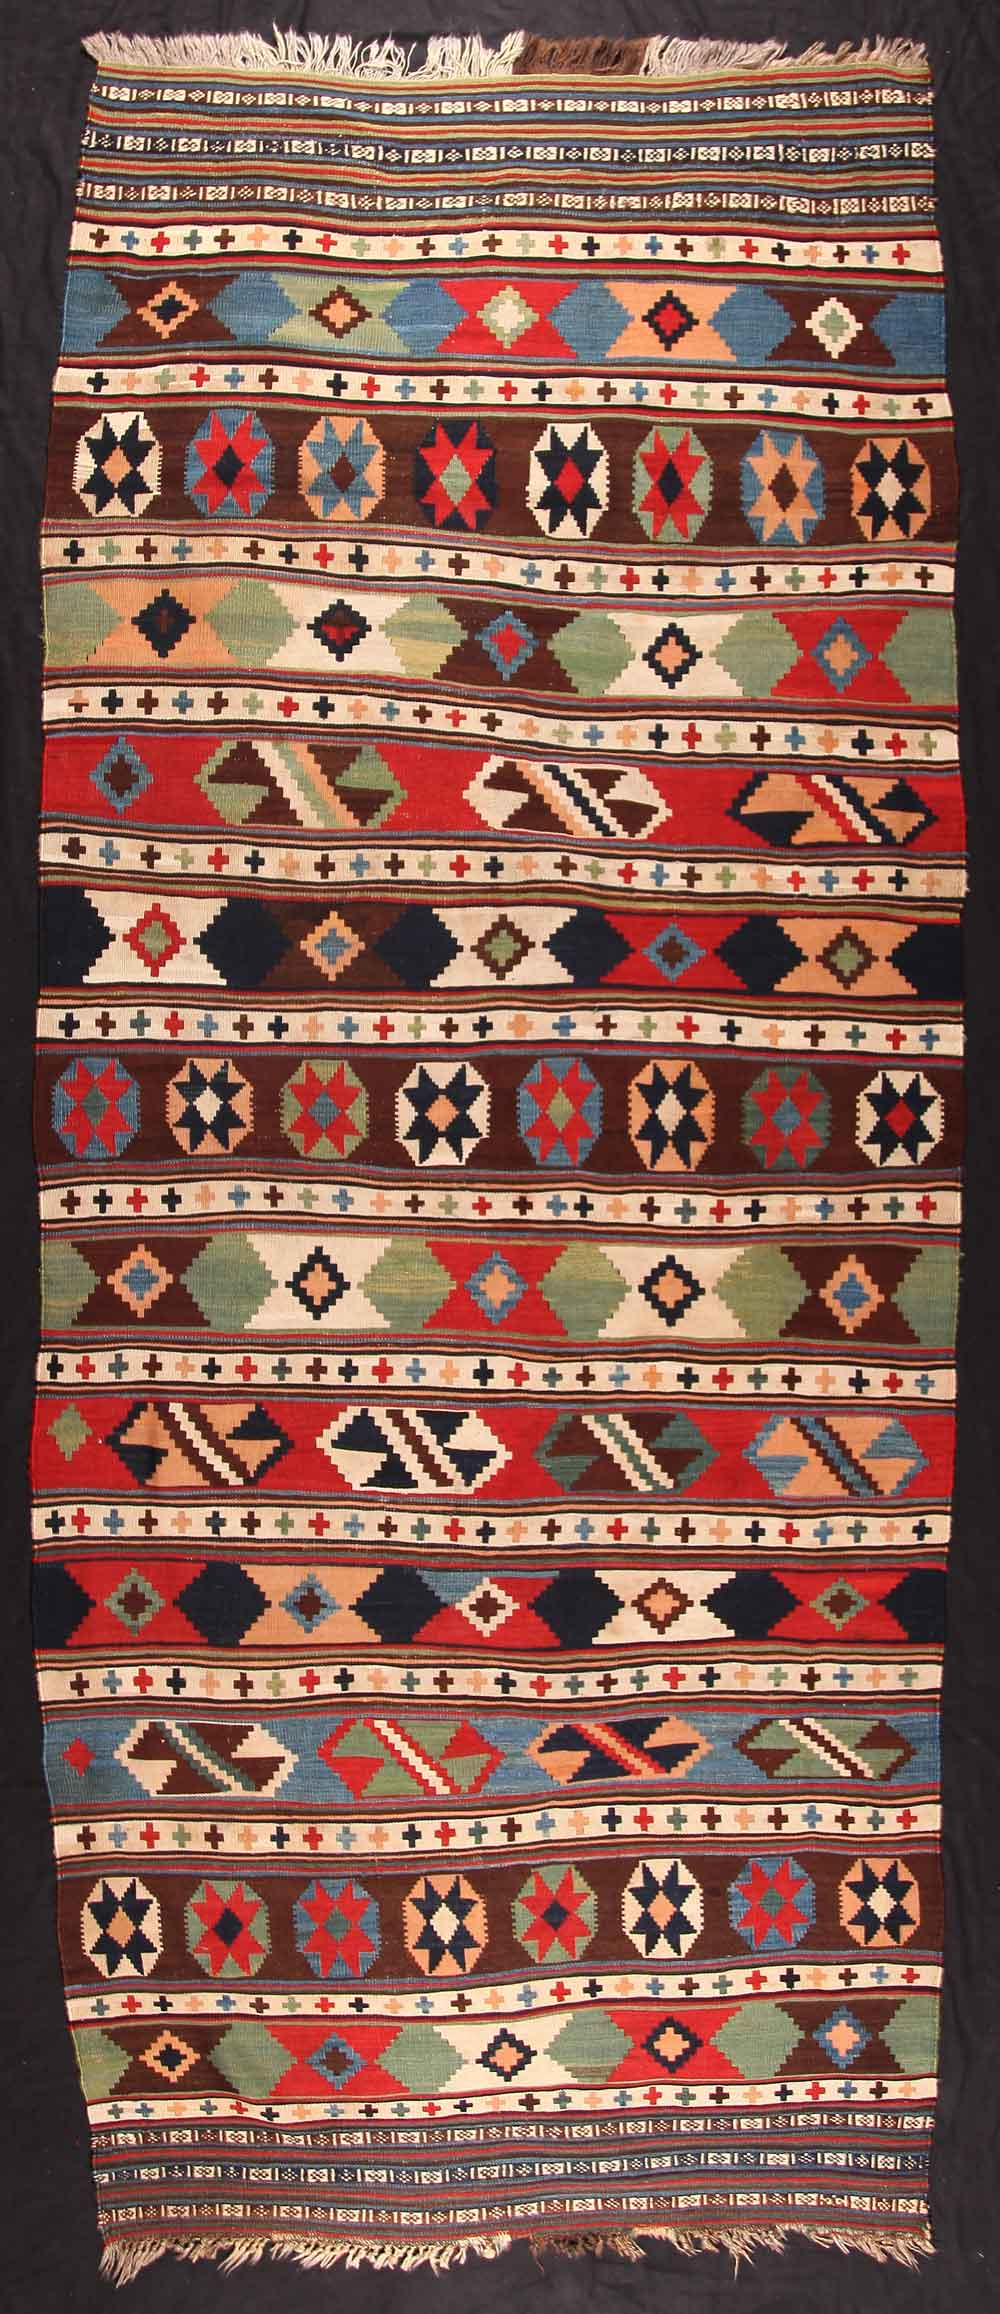 South Persian kilim, late 19th century